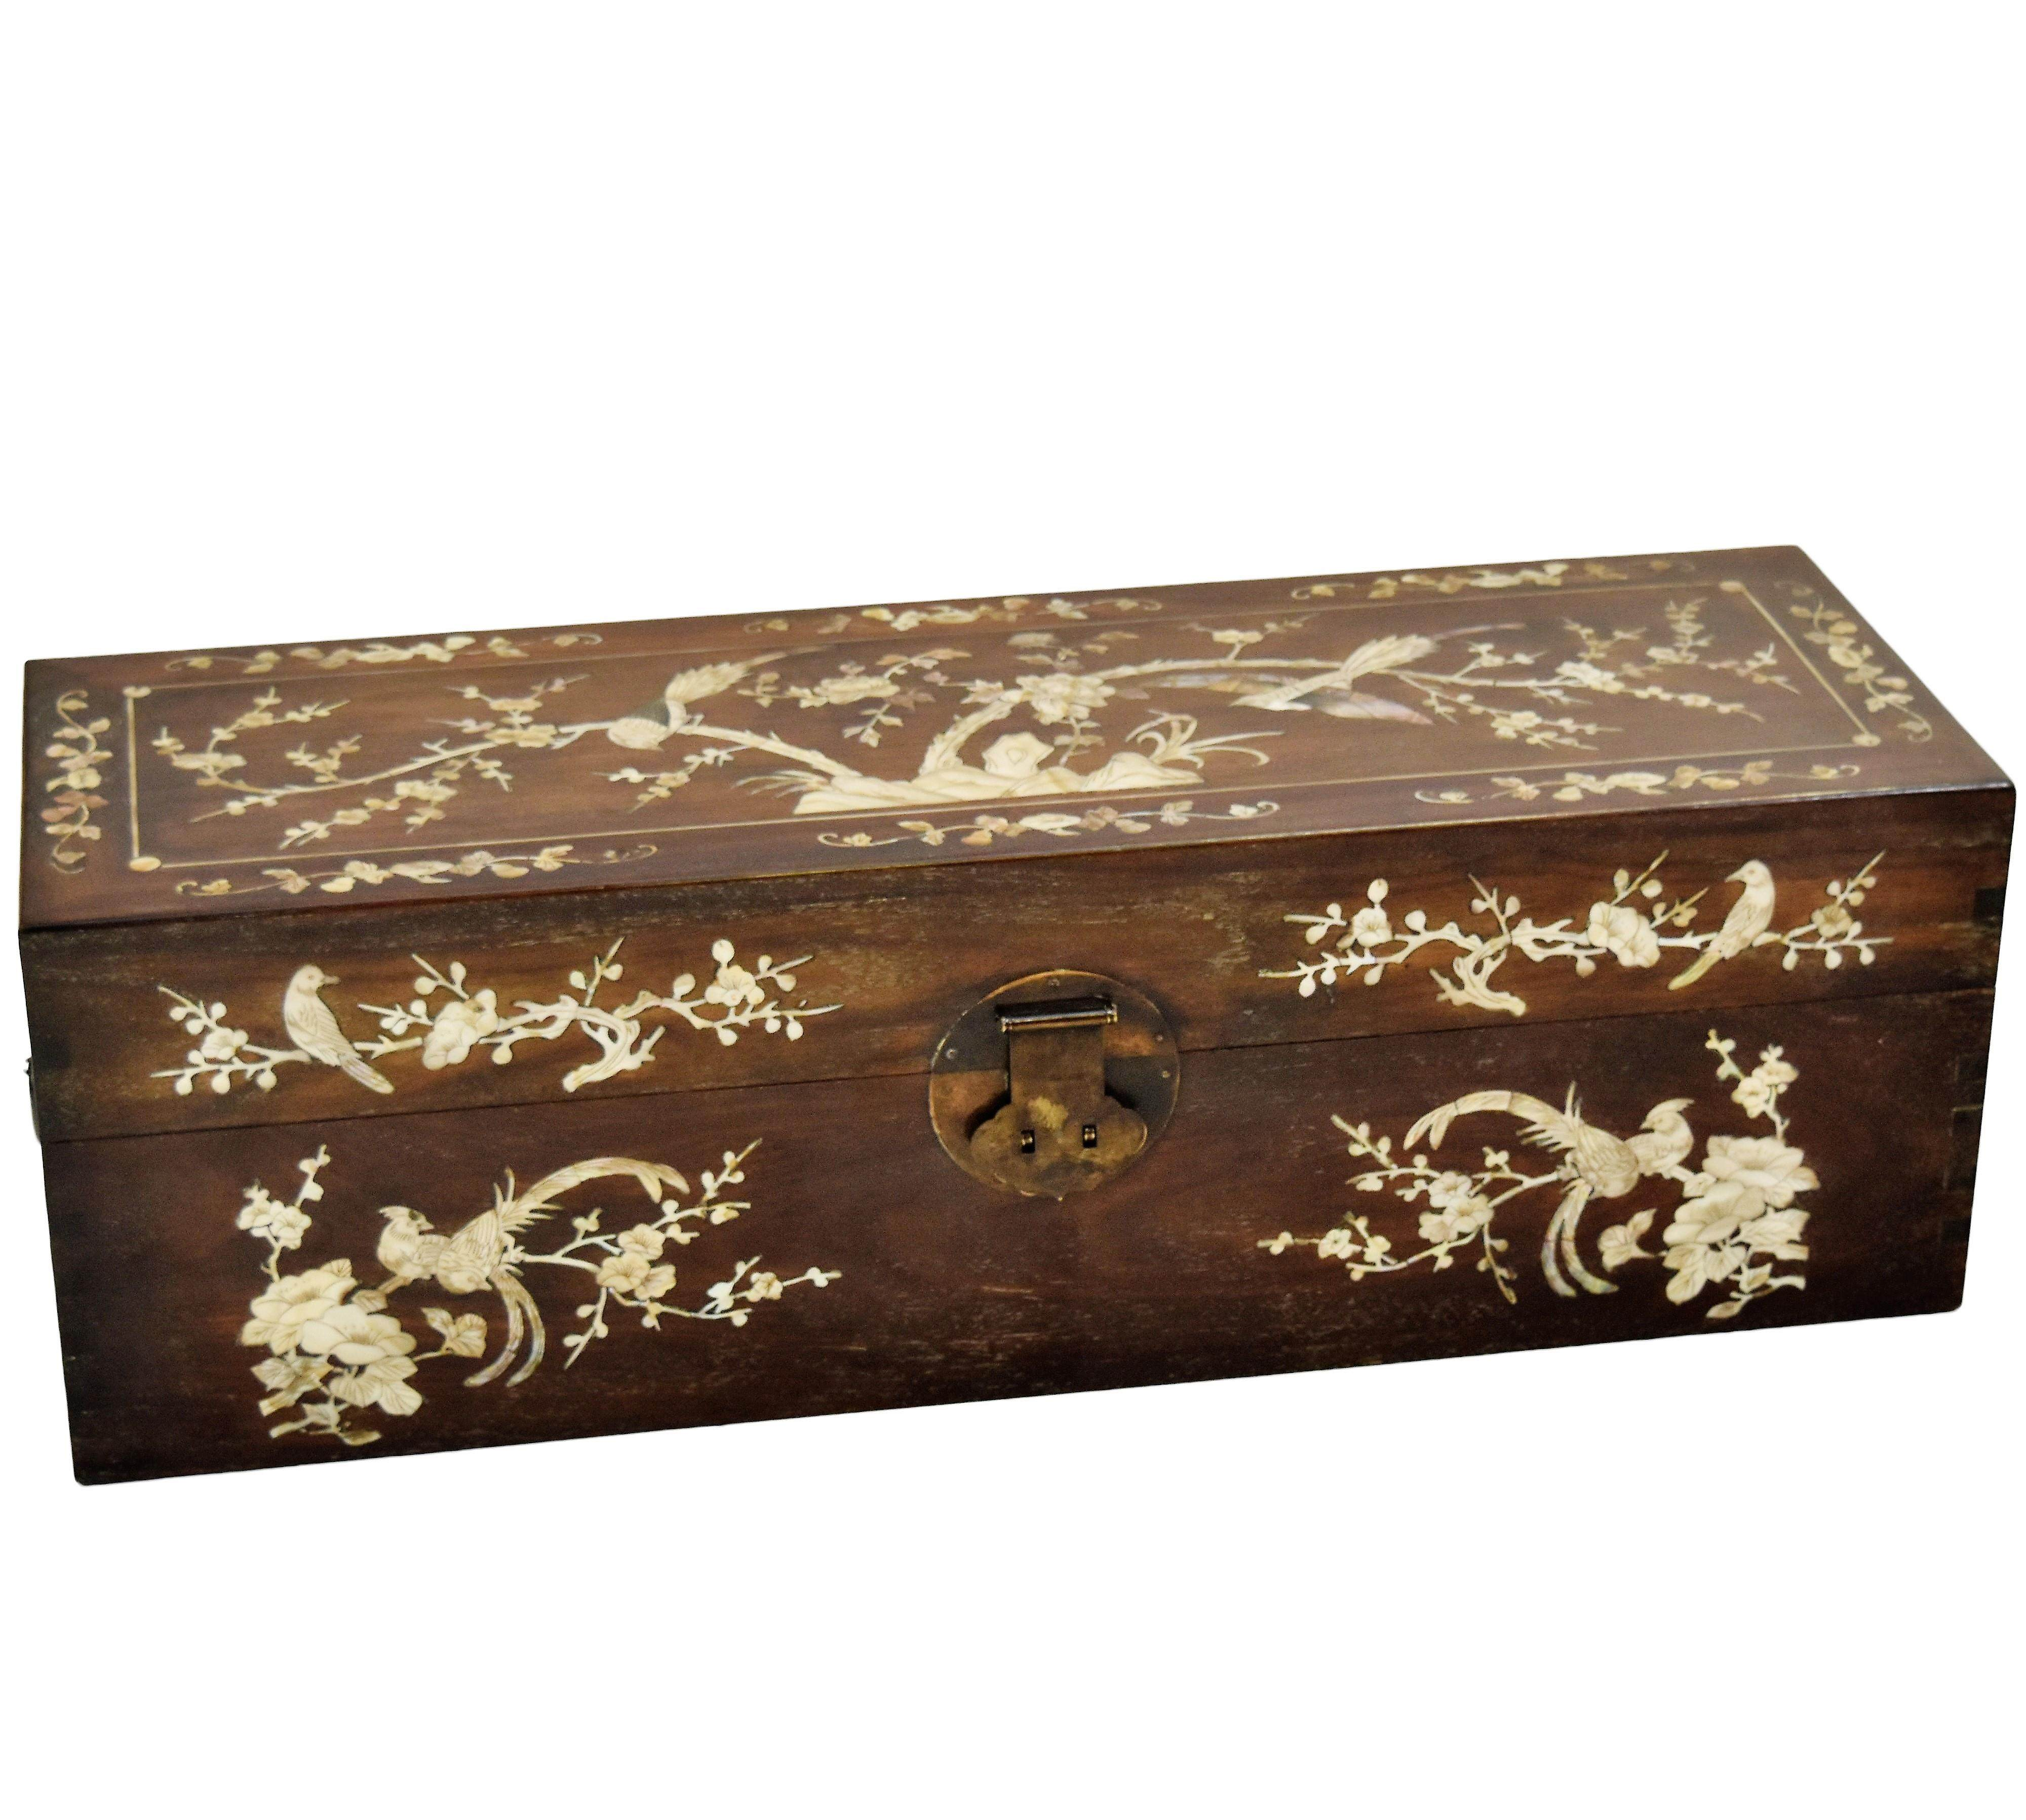 CHINESE MOP INLAID HUANGHUALI STORAGE CHEST, YIXIANG